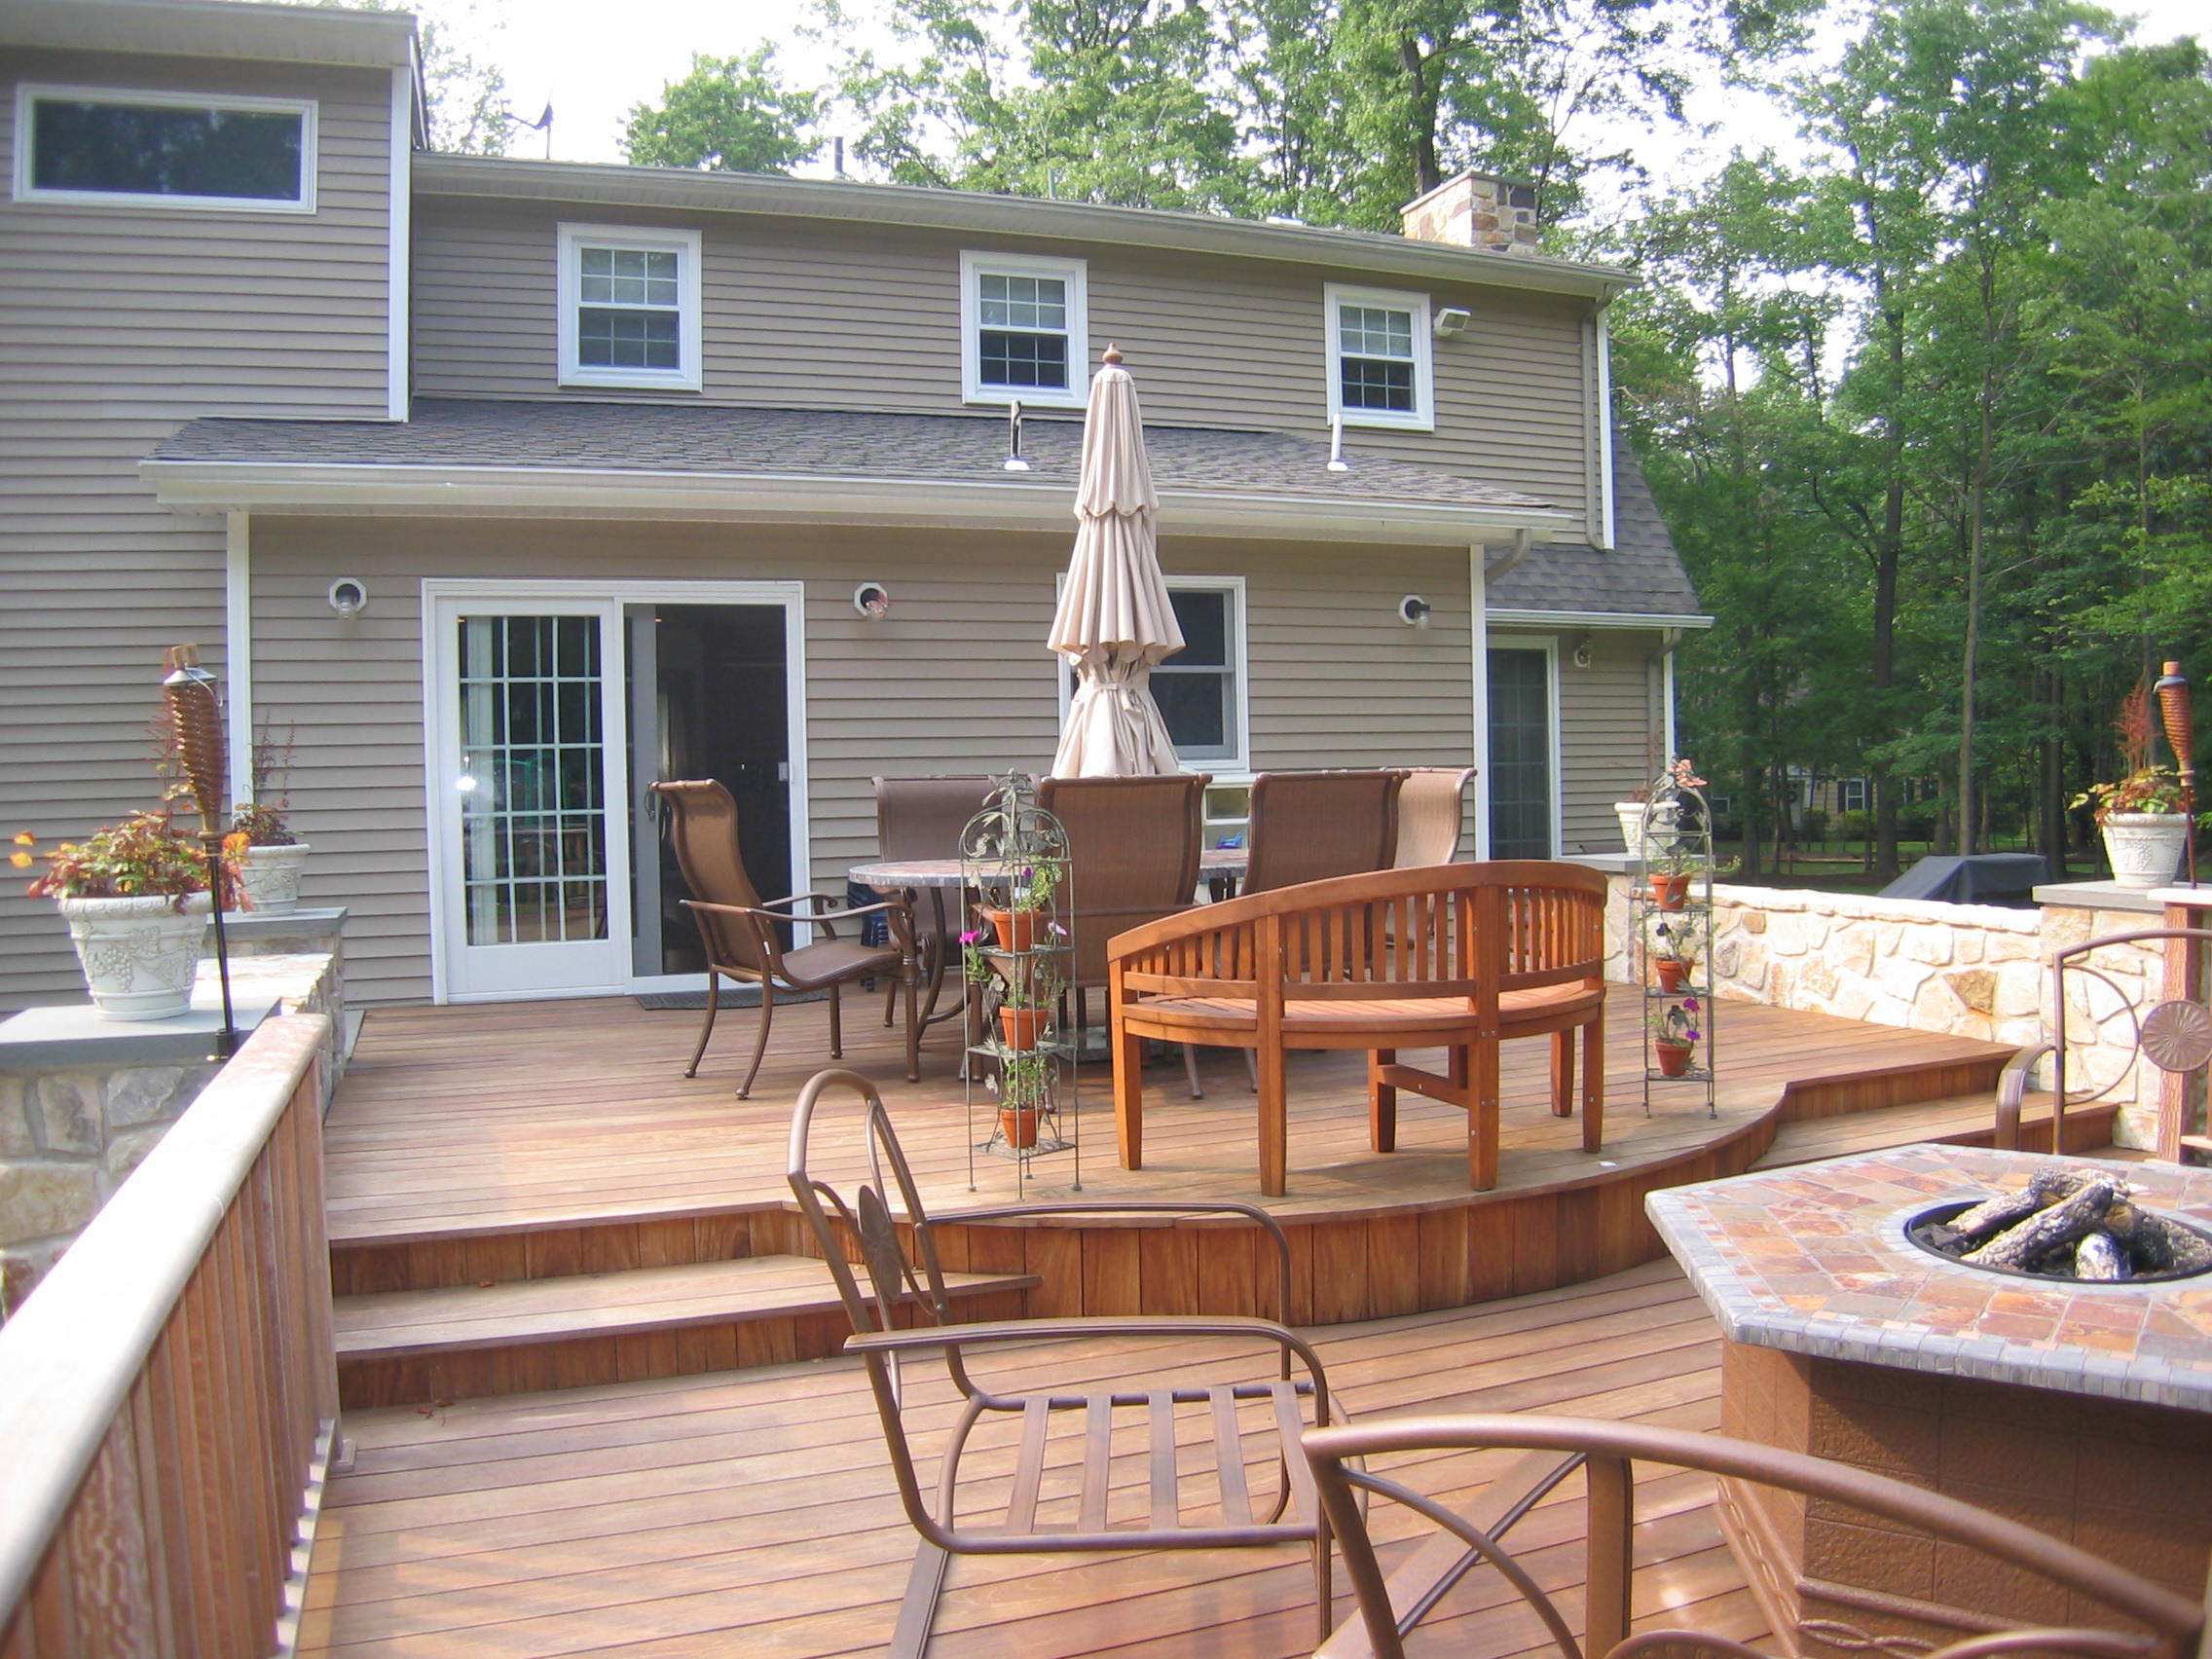 A two tiered deck with integral fire pit makes the kitchen addition beyond the true central focus of this Warren home.